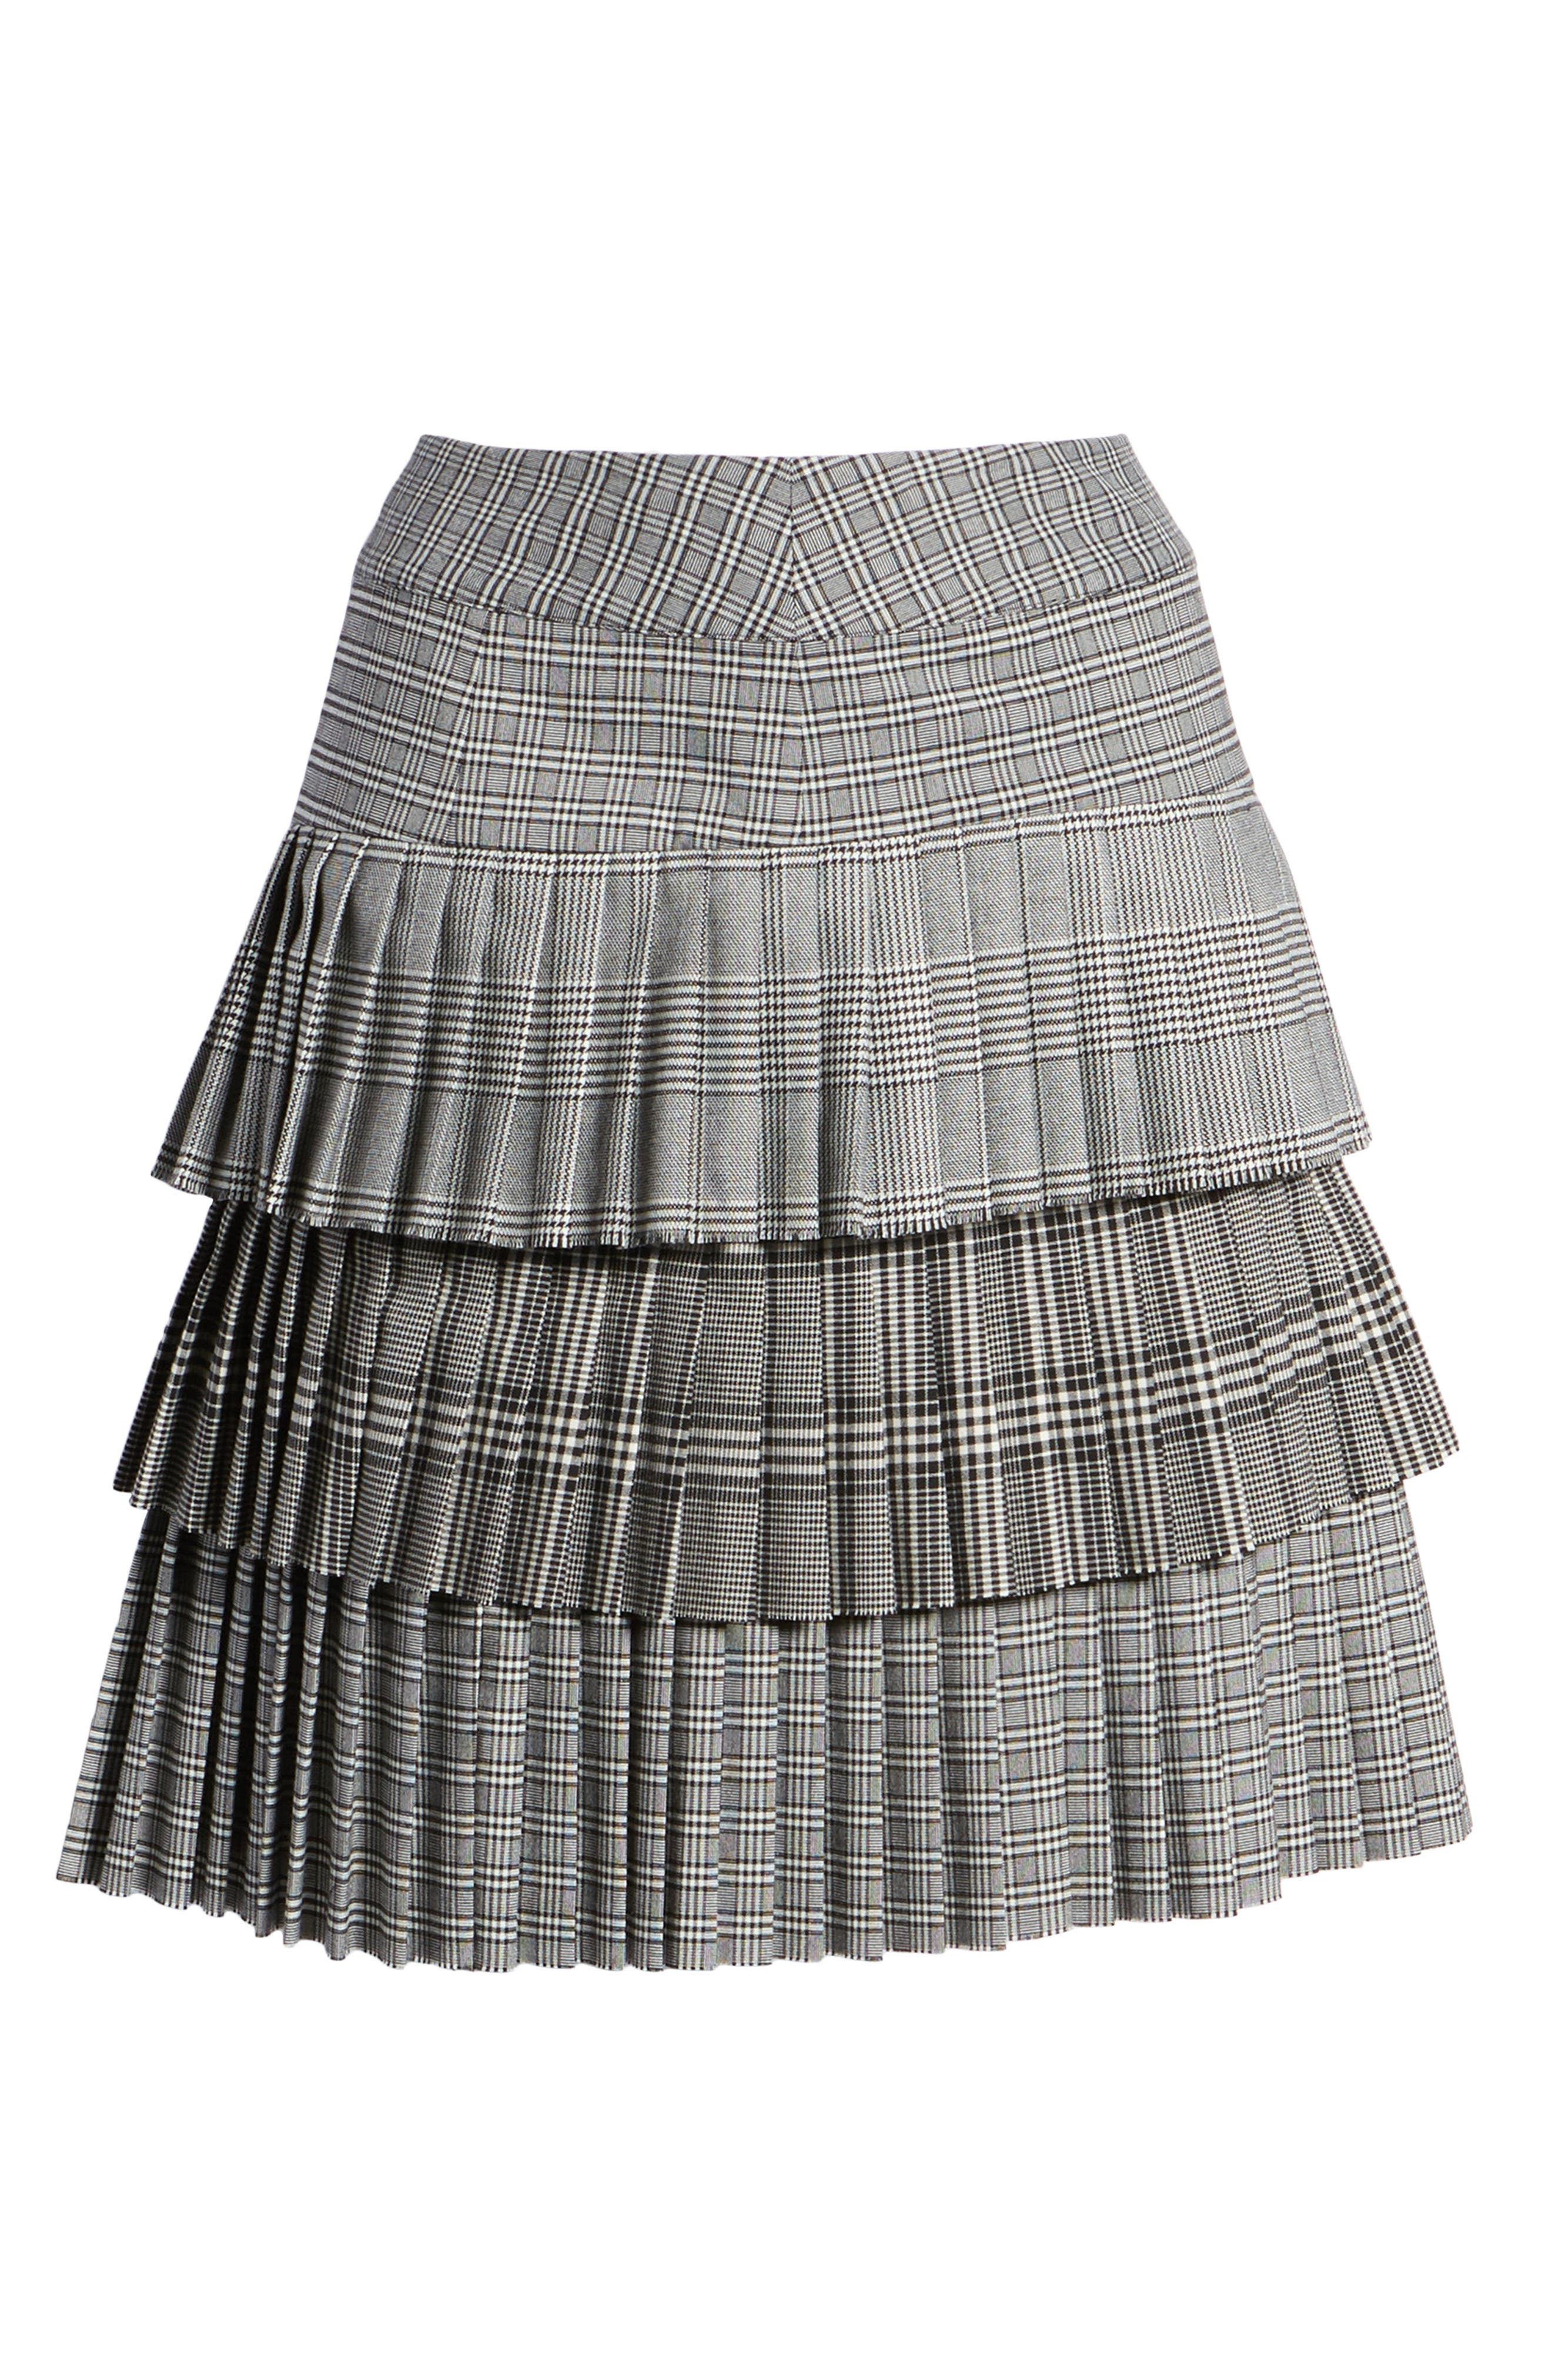 Layered Pleated Skirt,                             Alternate thumbnail 6, color,                             BLACK MIXED PLAID